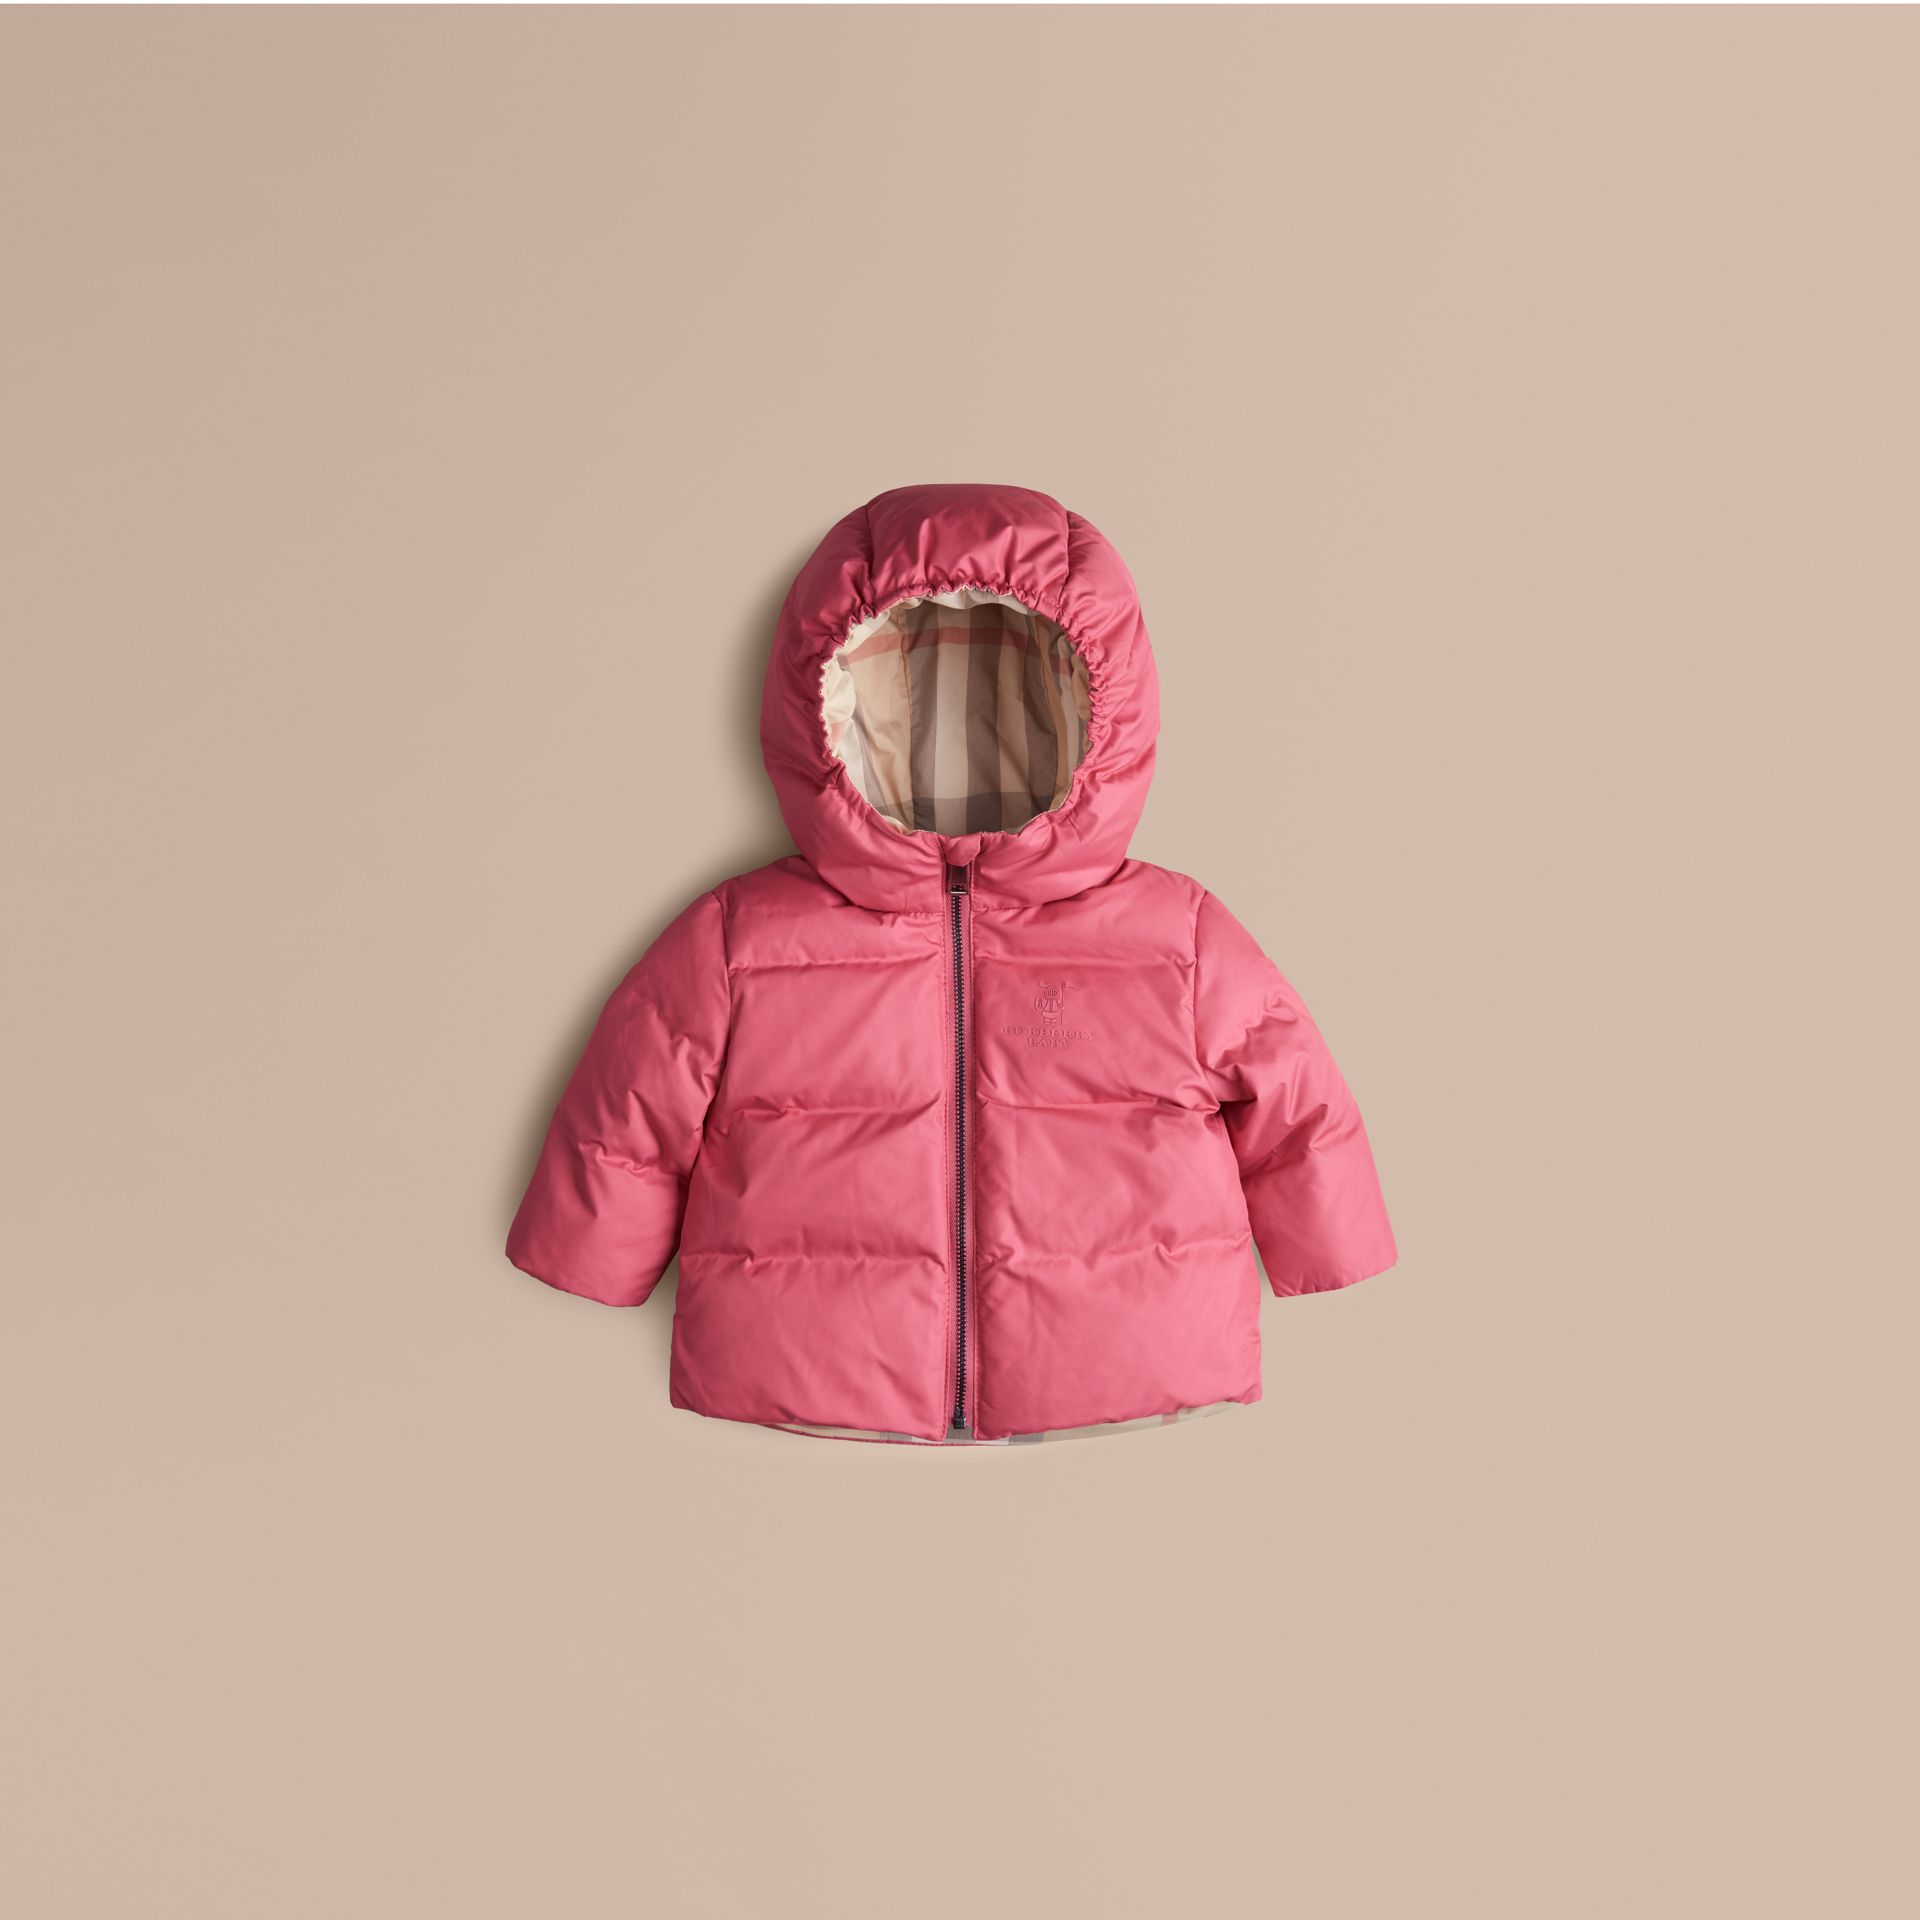 Camelia pink Check-Lined Puffer Jacket Camelia Pink - gallery image 1